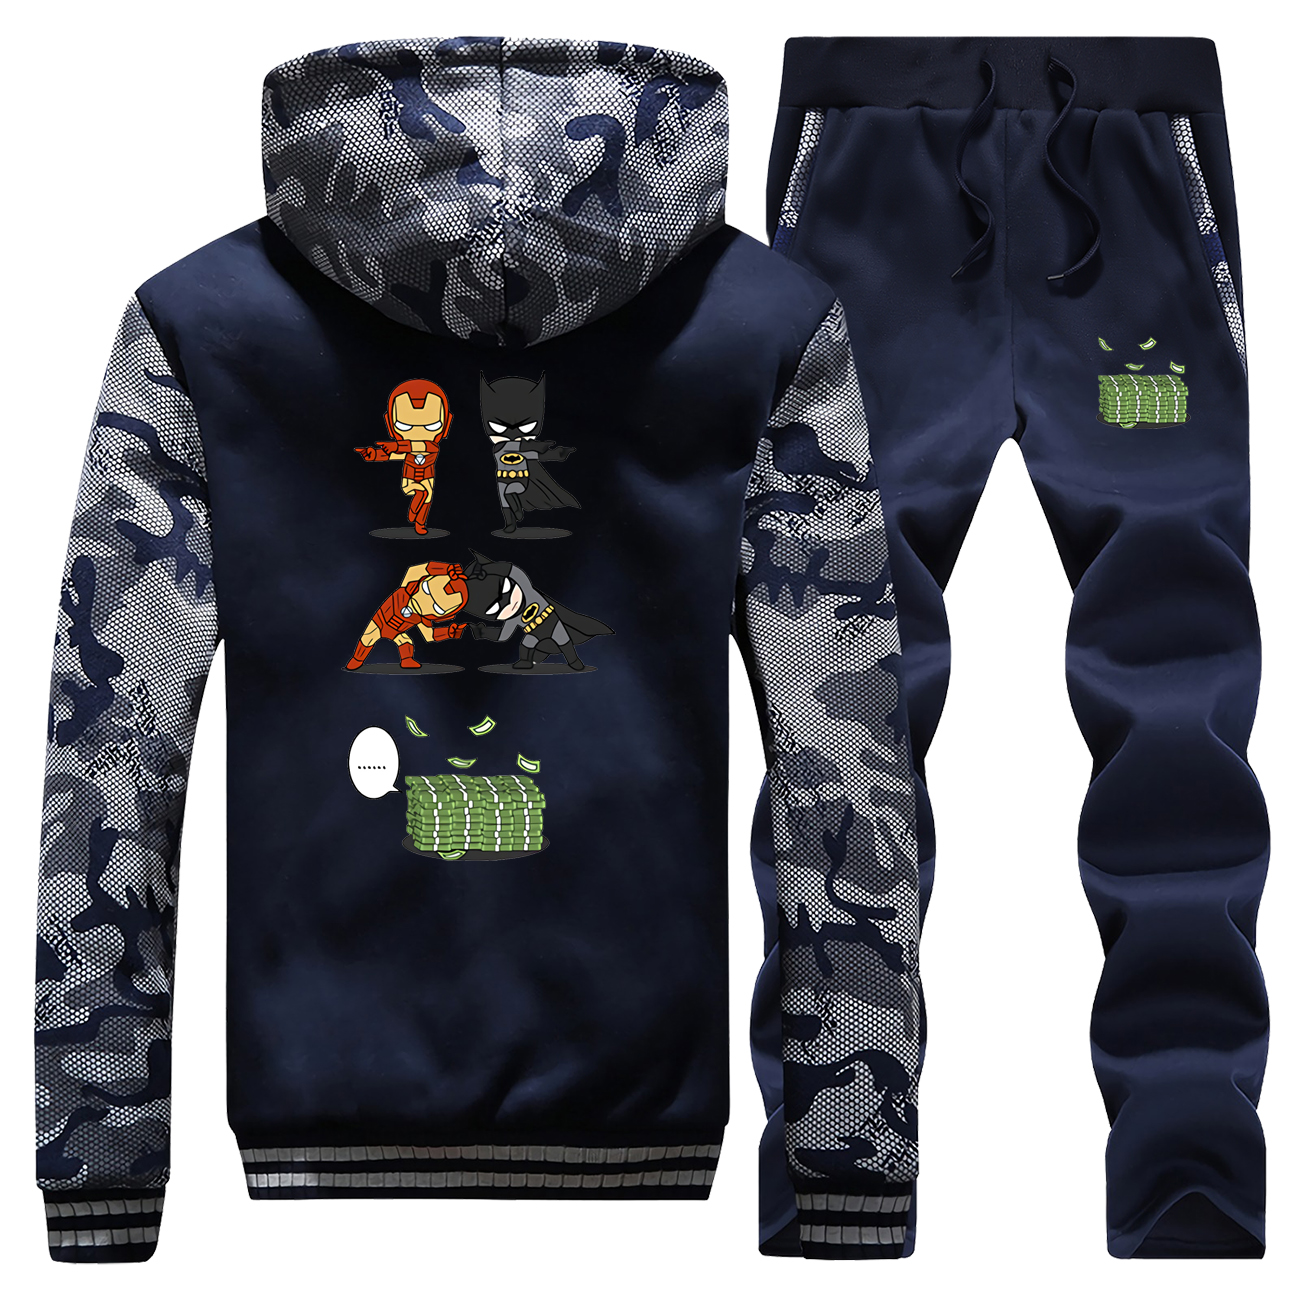 2019 Winter New Billionaires Iron Man And Batman Cartoon Jacket Sportswear Mens Hoodie Camouflage Coat Thick+Pants 2 Piece Set